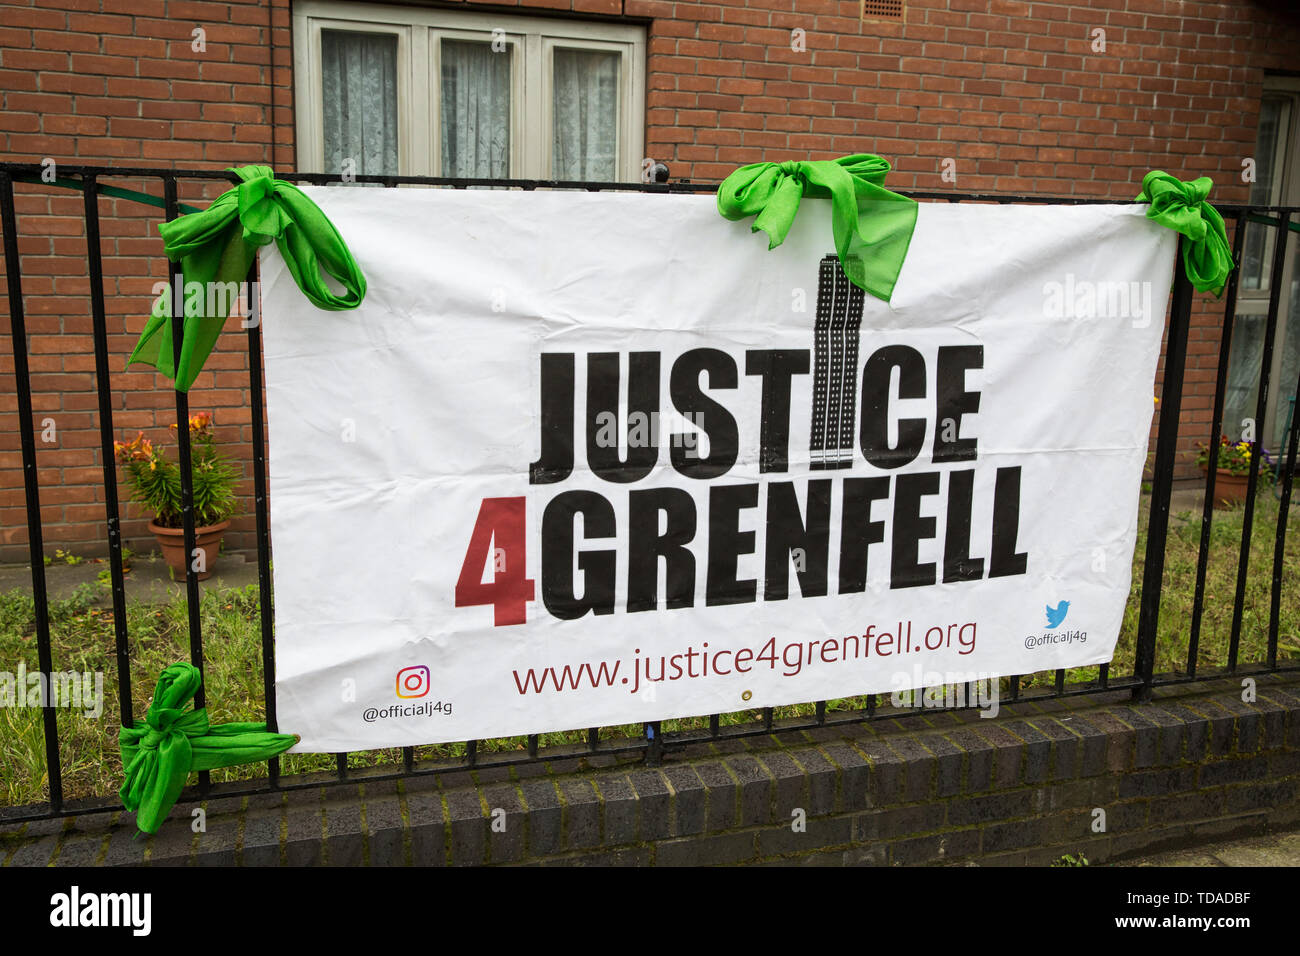 London, UK. 14 June, 2019. A Justice4Grenfell banner and Green for Grenfell scarves close to Grenfell Tower on the second anniversary of the Grenfell Tower fire on 14th June 2017 which claimed the lives of 72 people and injured over 70 more. Credit: Mark Kerrison/Alamy Live News - Stock Image